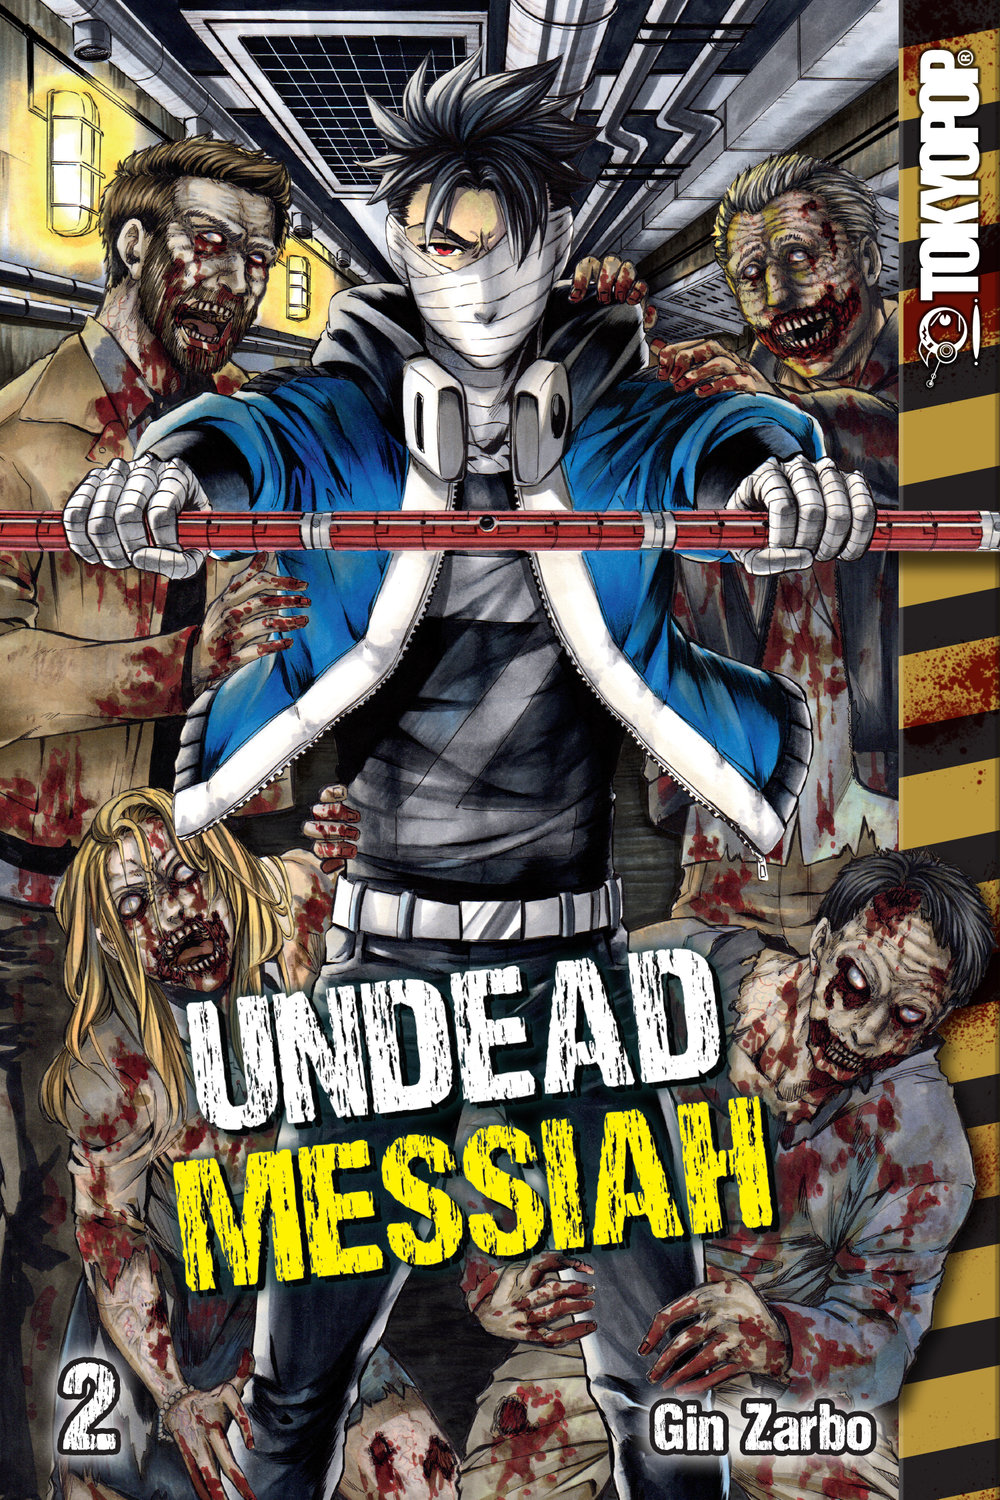 Undead Messiah, Vol. 2